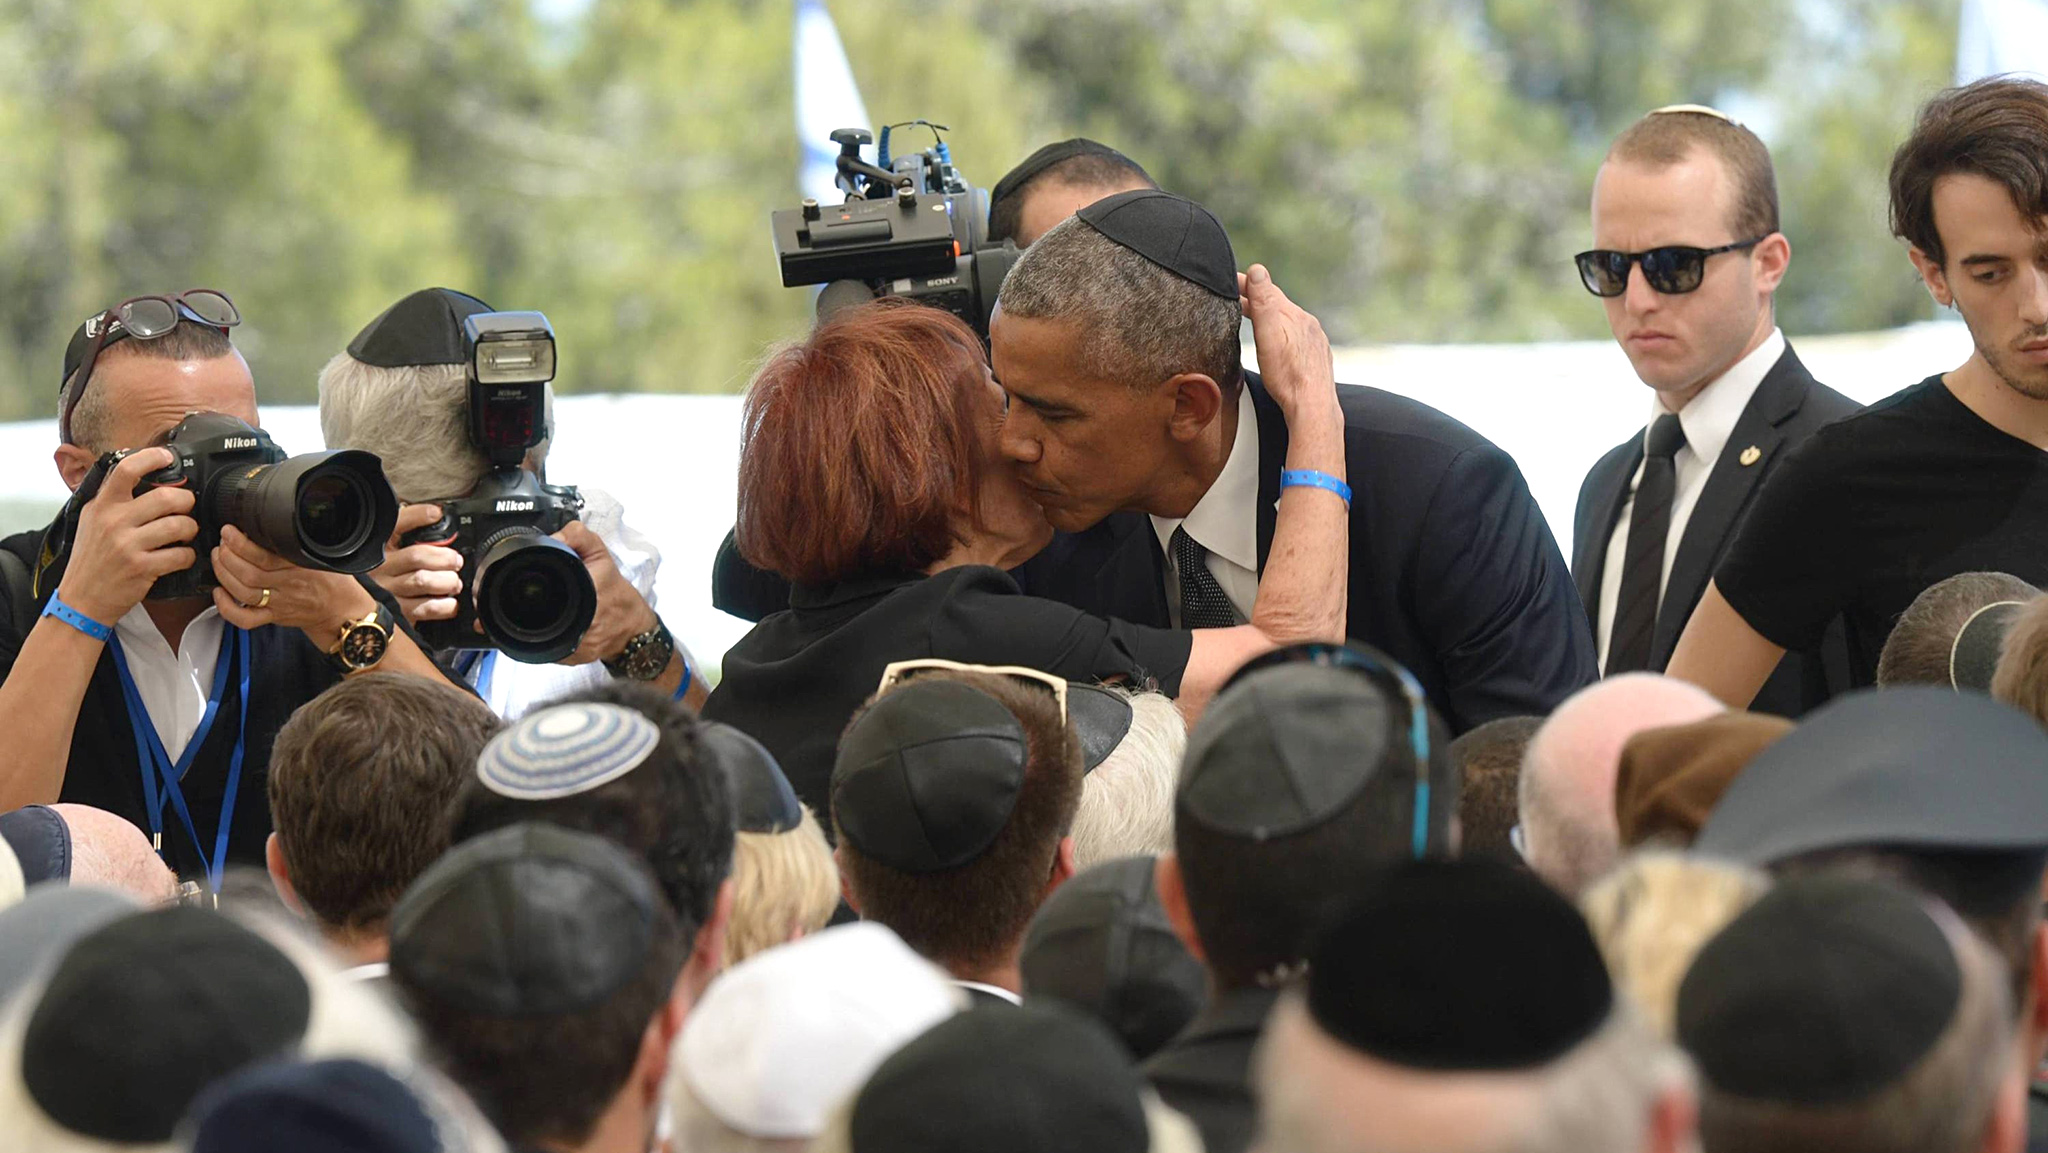 In this handout photo provided by the Israel Government Press Office (GPO), U.S President Barack Obama and Shimon Peres' daughter Tsvia Walden attend the funeral ceremony held for the former Israeli leader Shimon Peres at Mount Herzl on September 30, 2016 in Jerusalem, Israel.  World leaders and dignitaries from 70 countries attended the state funeral of Israel's ninth president, Shimon Peres, in Jerusalem on Friday, after thousands of Israelis paid their last respects to the elder statesman who died on Wednesday.  (Photo by Amos Ben Gershom/GPO via Getty Images)